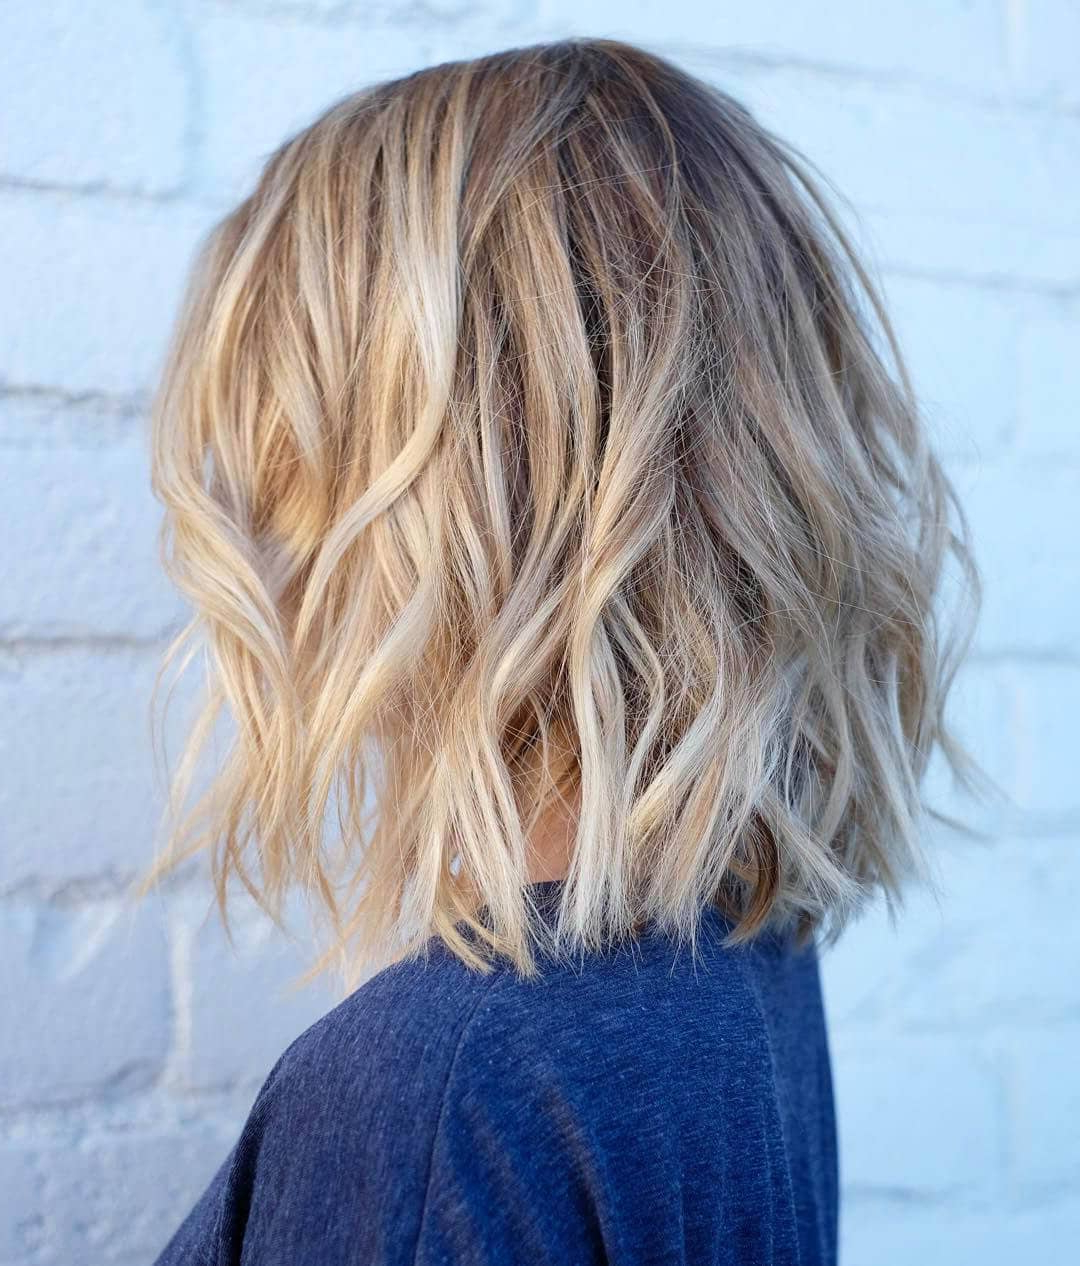 50 Fresh Short Blonde Hair Ideas To Update Your Style In 2018 Inside Wavy Bronde Bob Shag Haircuts (View 7 of 20)